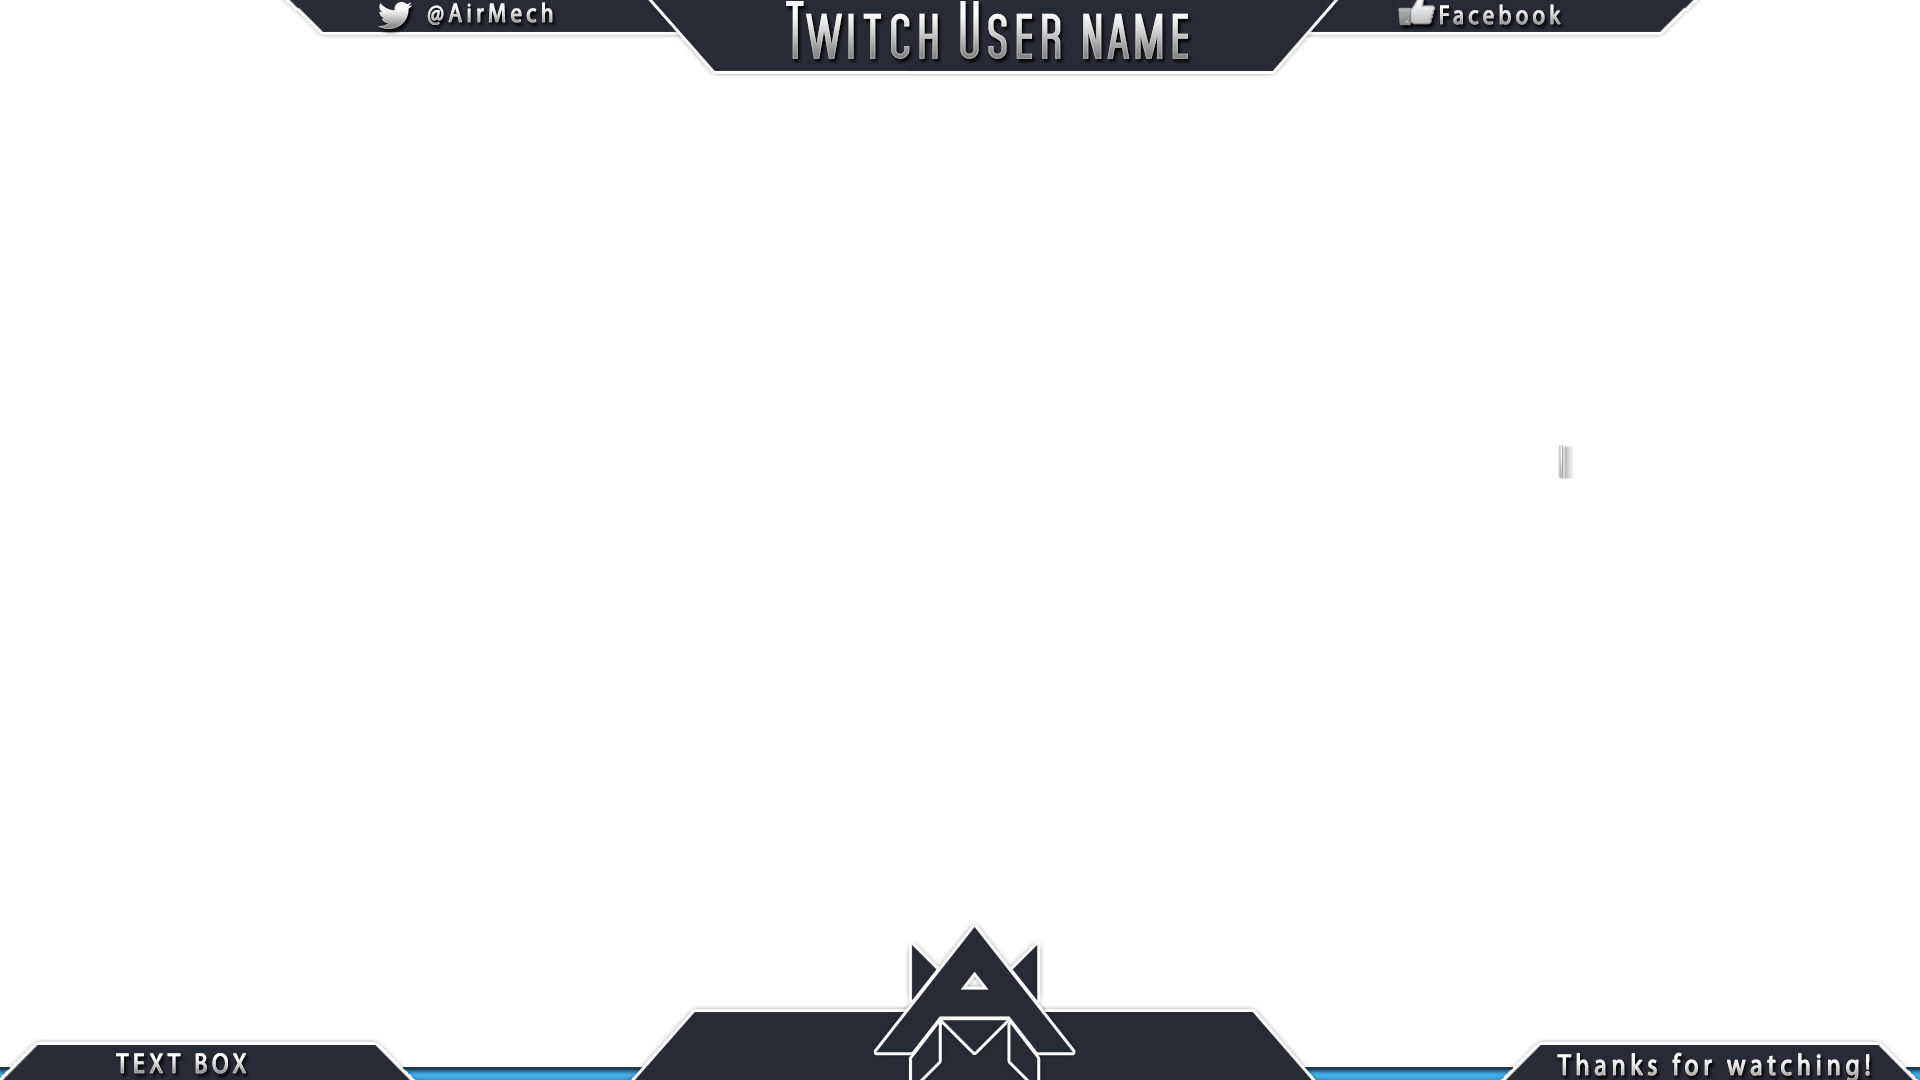 15 twitch banner psd images twitch overlay template twitch profile banner template and. Black Bedroom Furniture Sets. Home Design Ideas